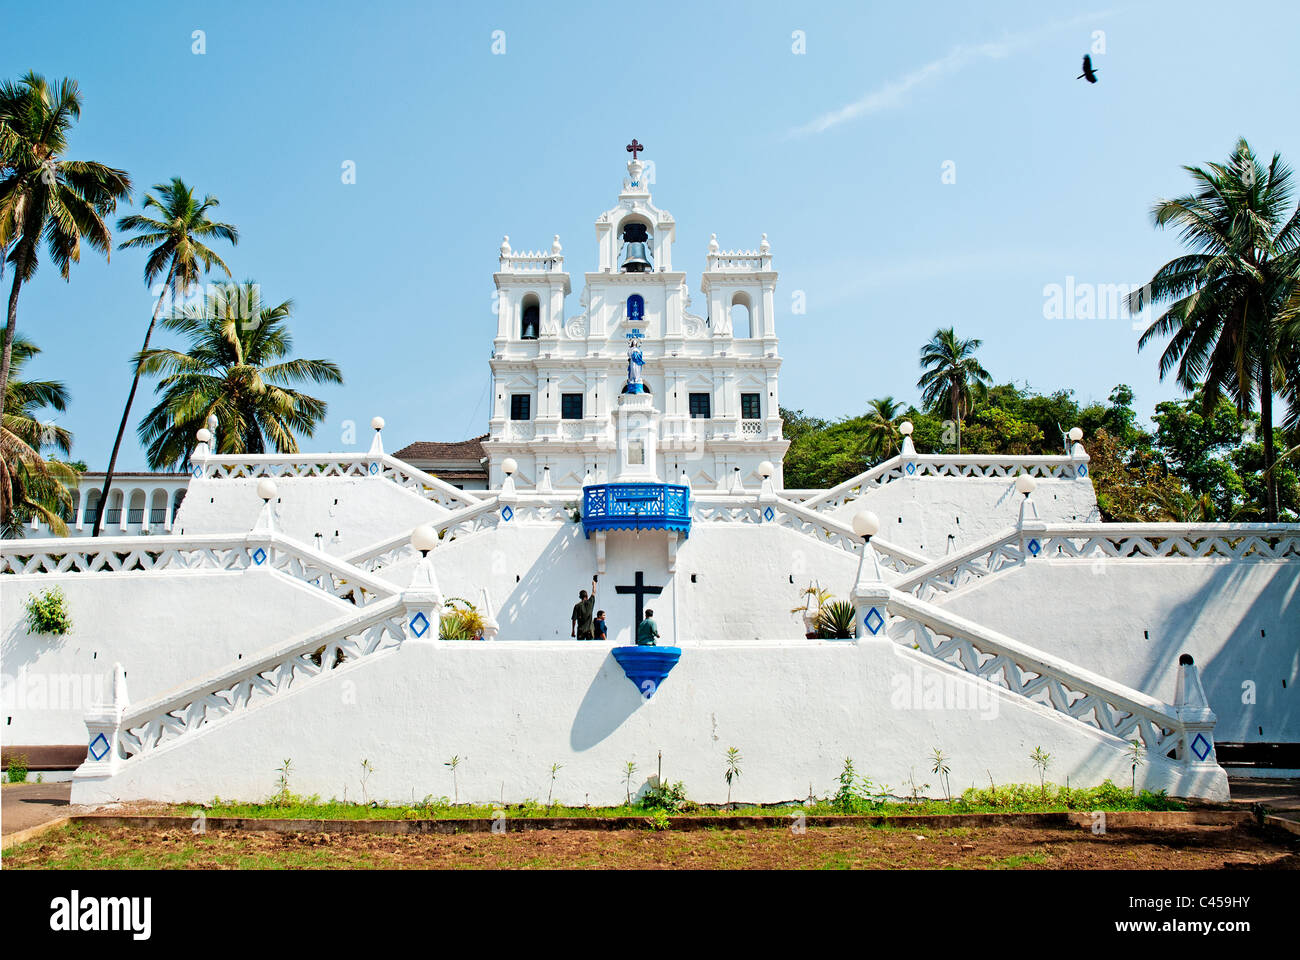 Church Mary Immaculate panaji goa india - Stock Image